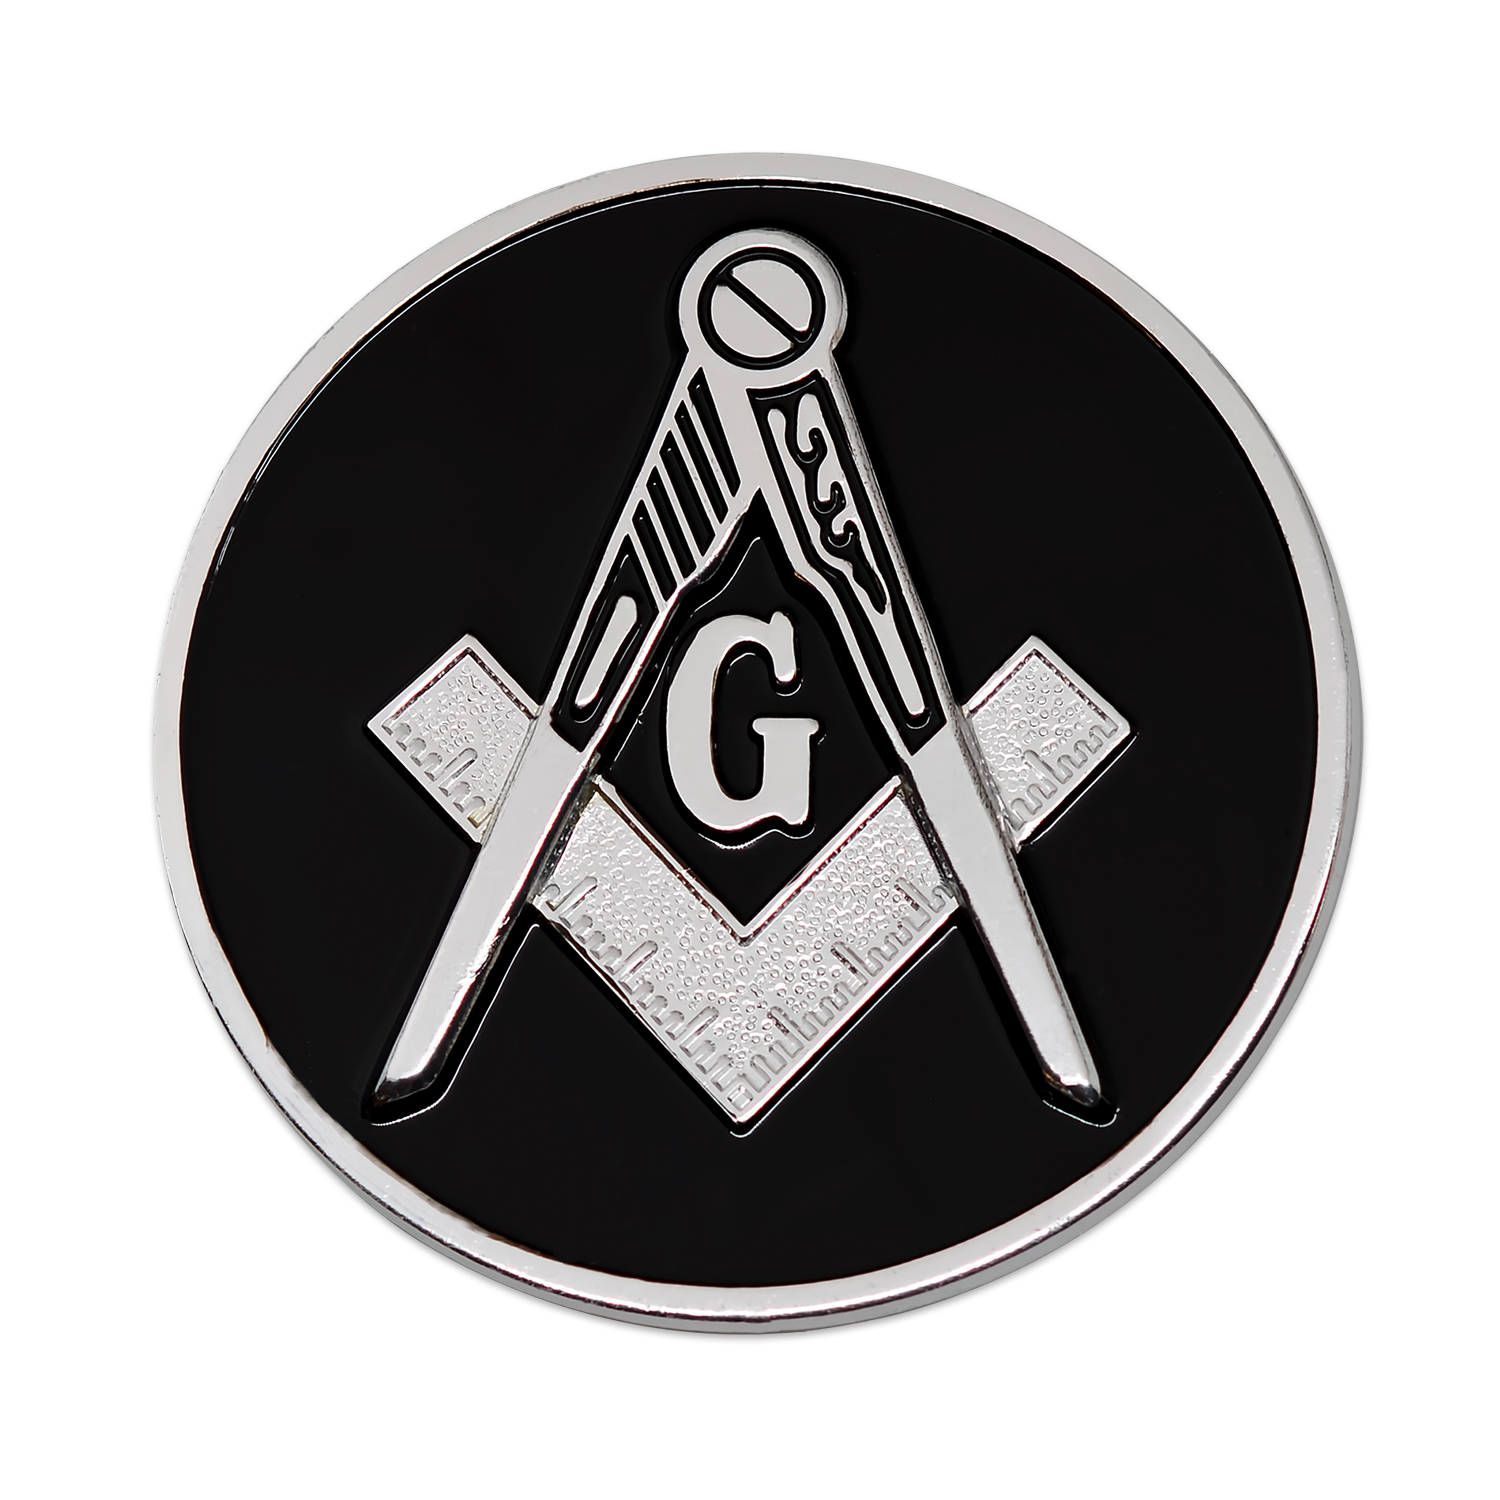 3 Diameter The Masonic Exchange TME-EMB-00019 Square /& Compass Round Black /& Silver Masonic Auto Emblem